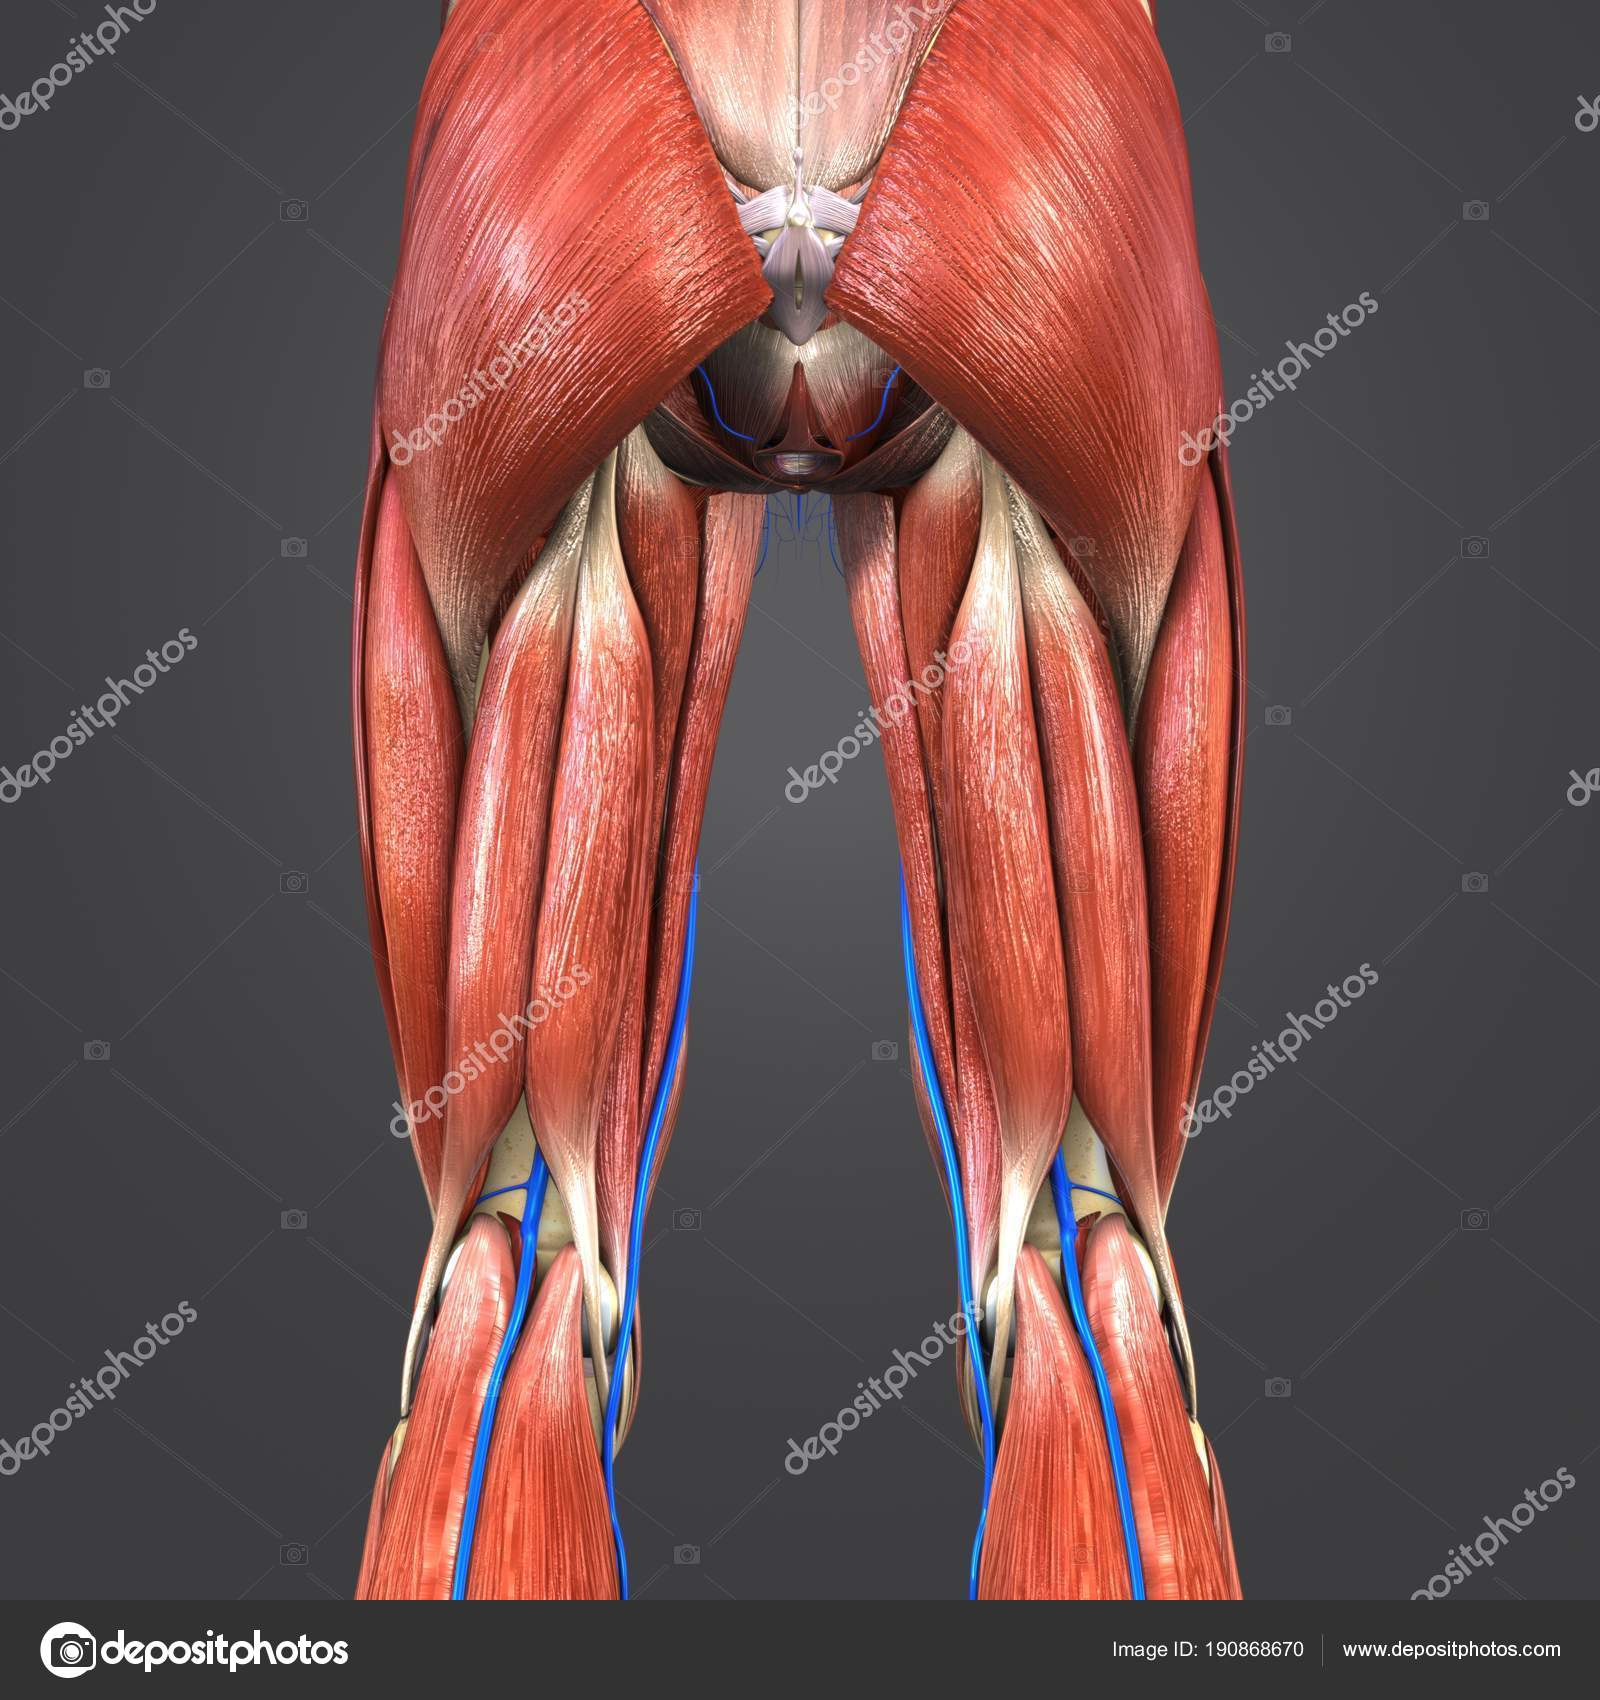 Colorful Medical Illustration Human Lower Limbs Veins — Stock Photo ...